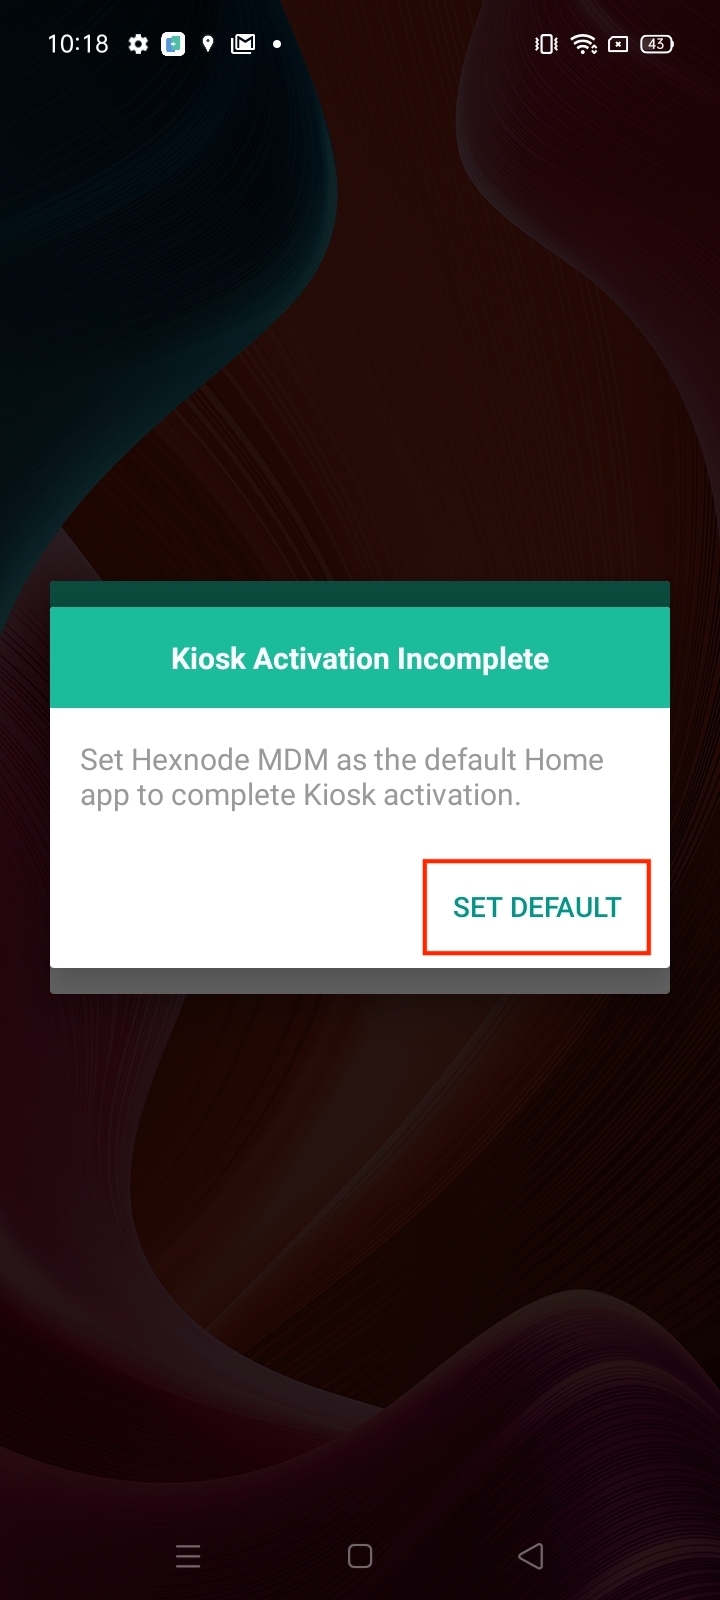 Complete kiosk activation on devices enrolled as Device Admin